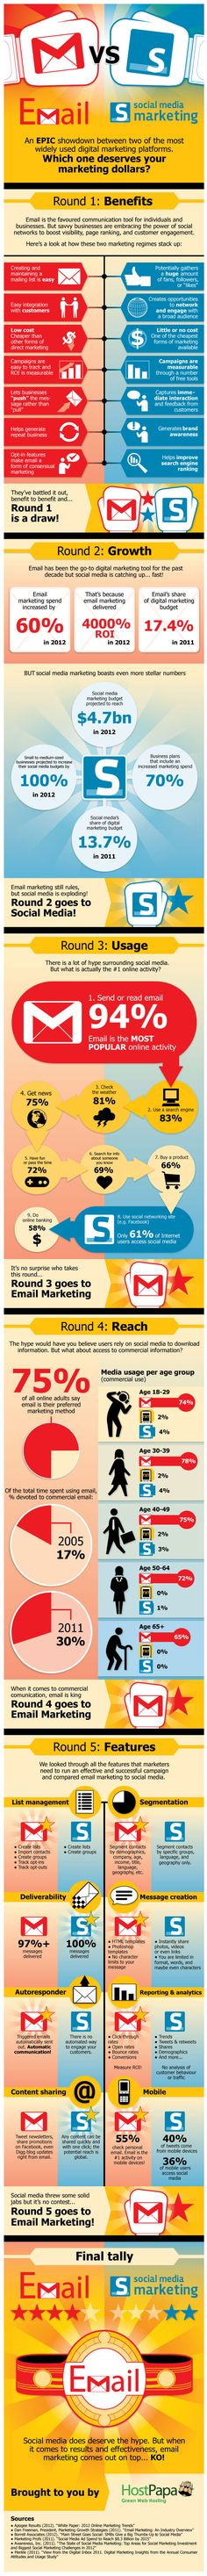 Email marketing vs Social Media Marketing #infografia #infographic #socialmedia #marketing